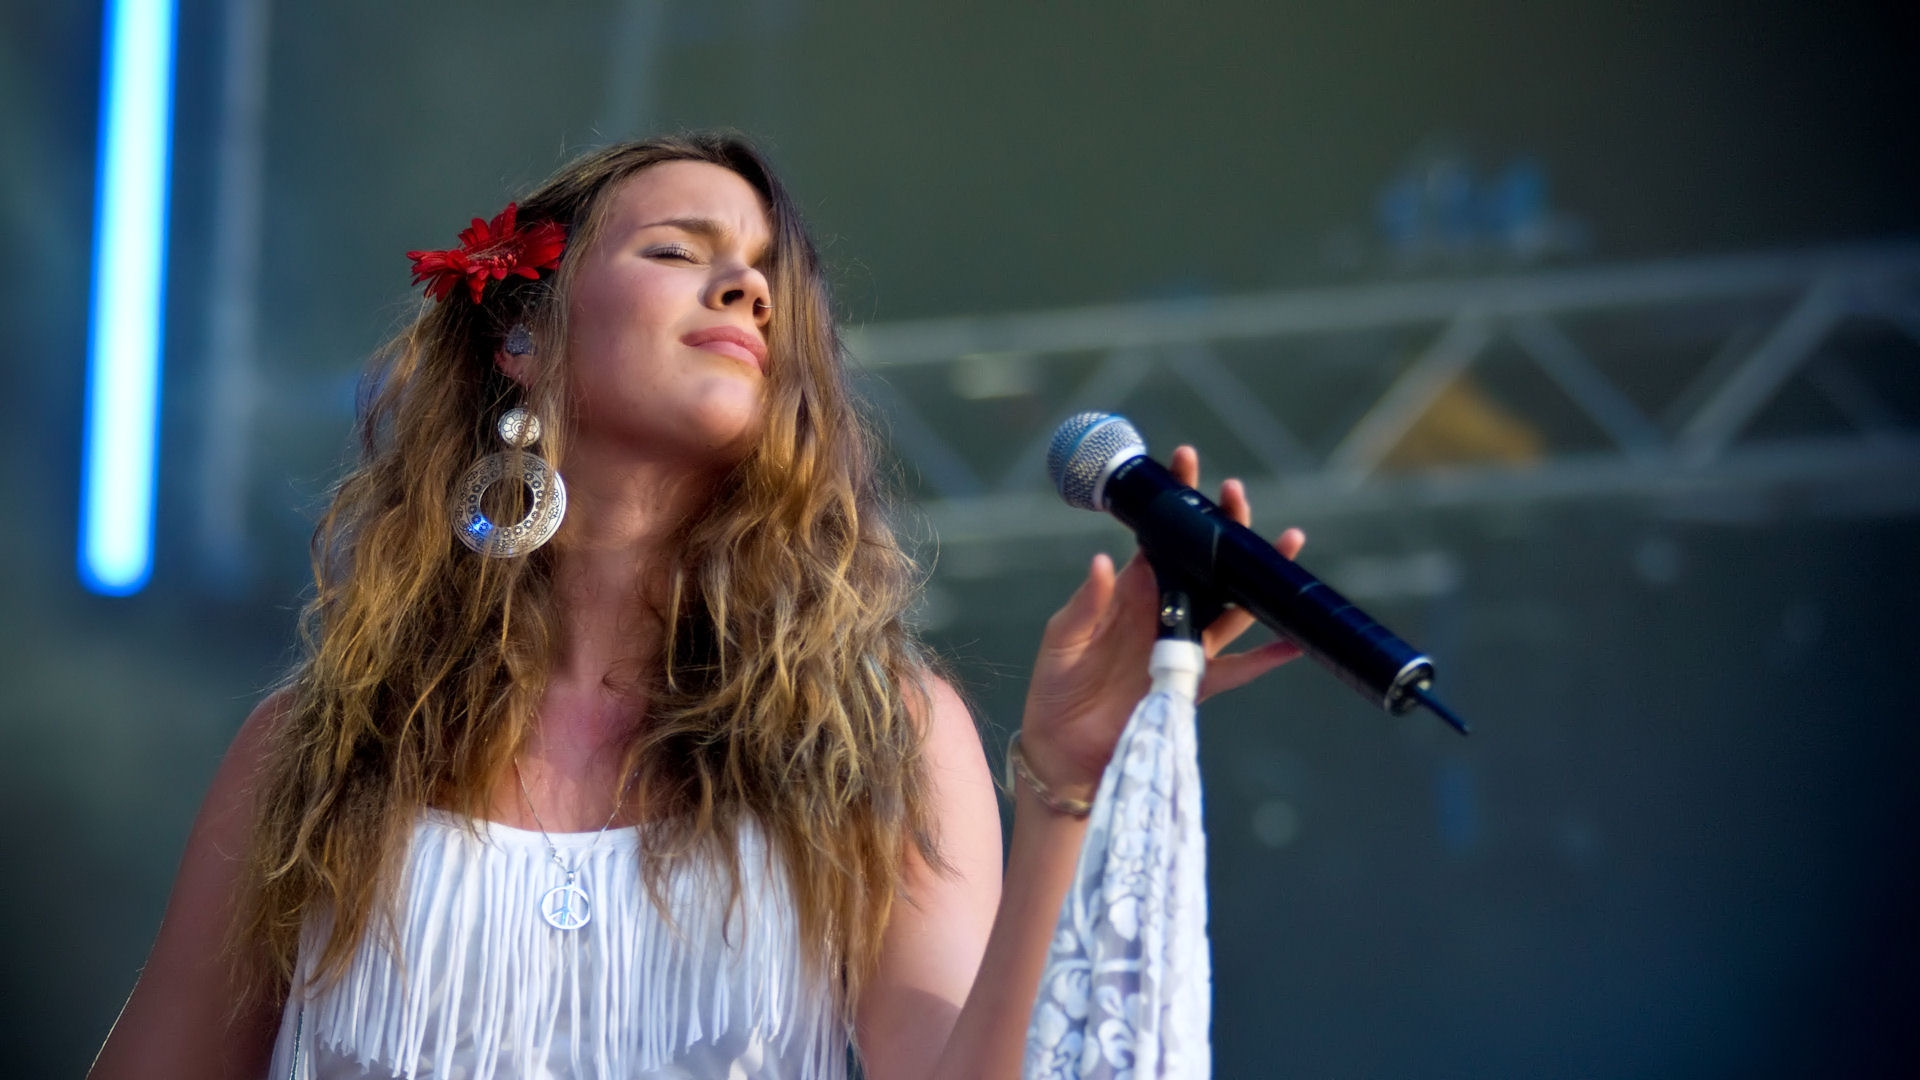 joss stone singer wallpaper 61068